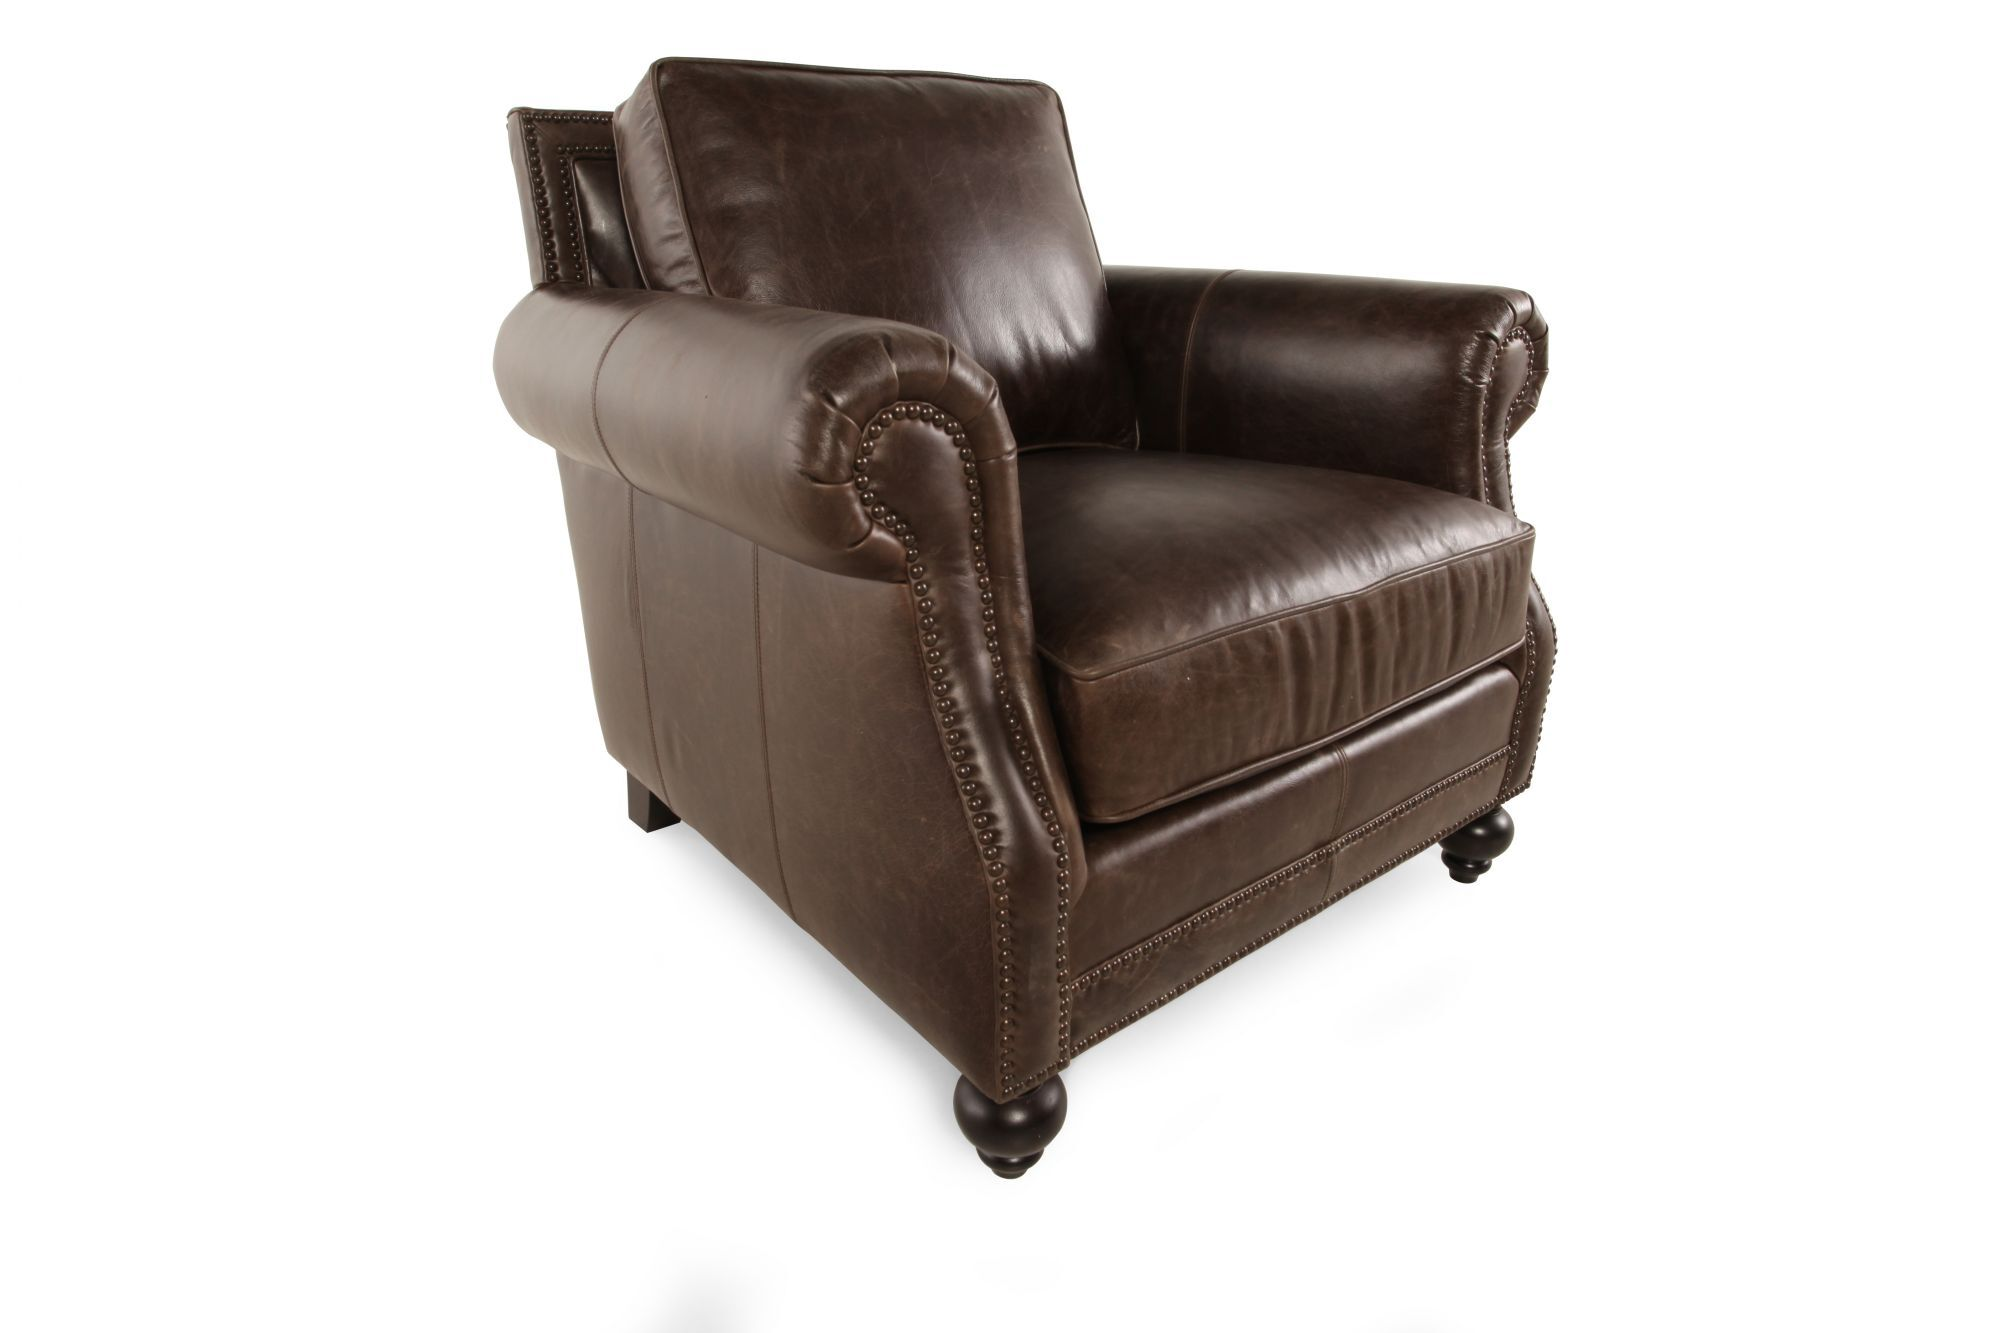 Bernhardt Brae Leather Chair  Mathis Brothers Furniture